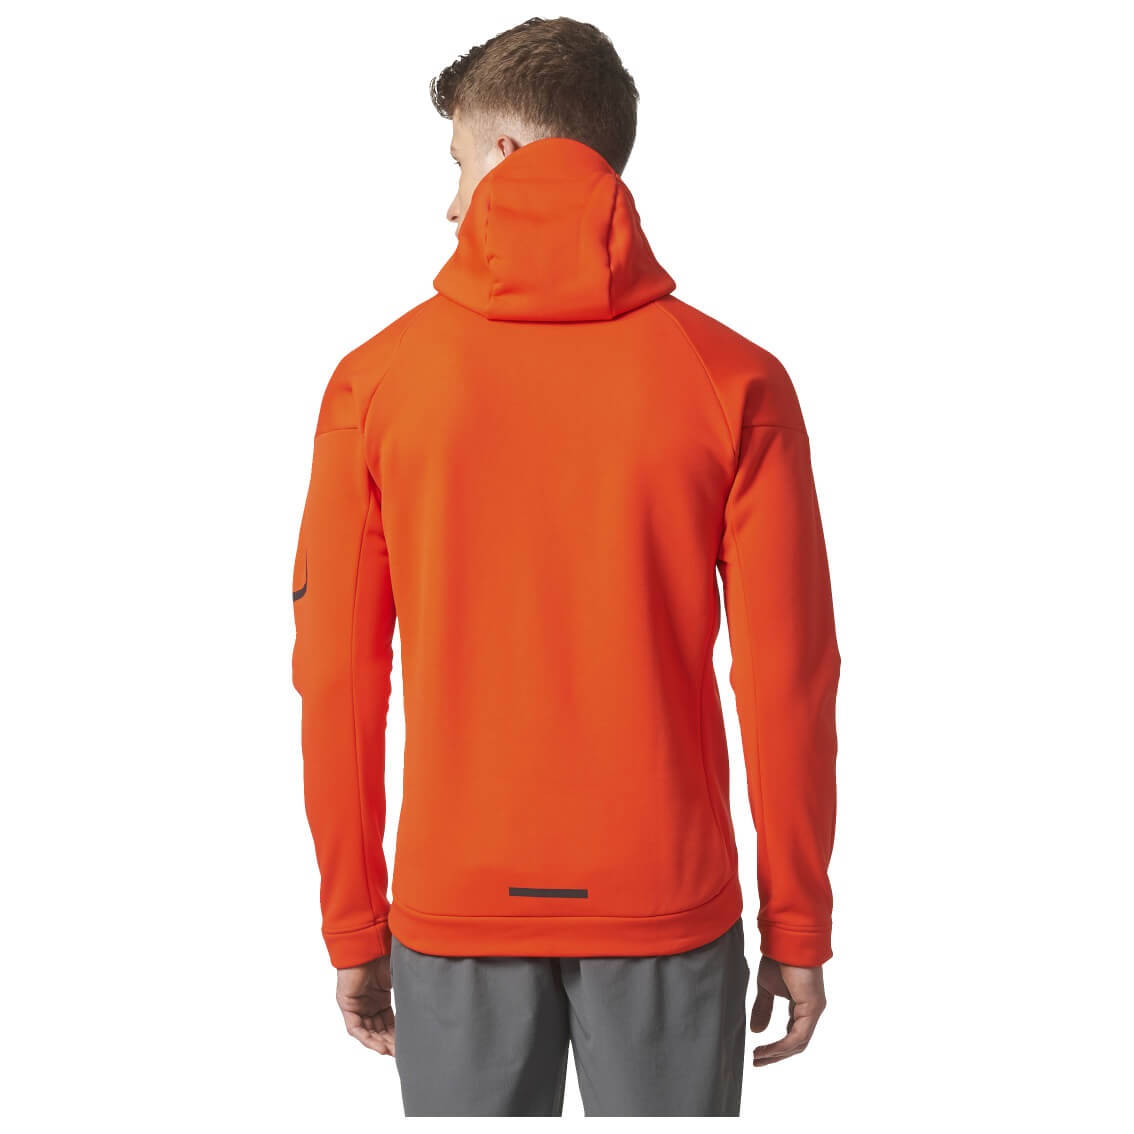 Adidas Terrex Climaheat Ultimate Fleece Jacket Fleecejakke